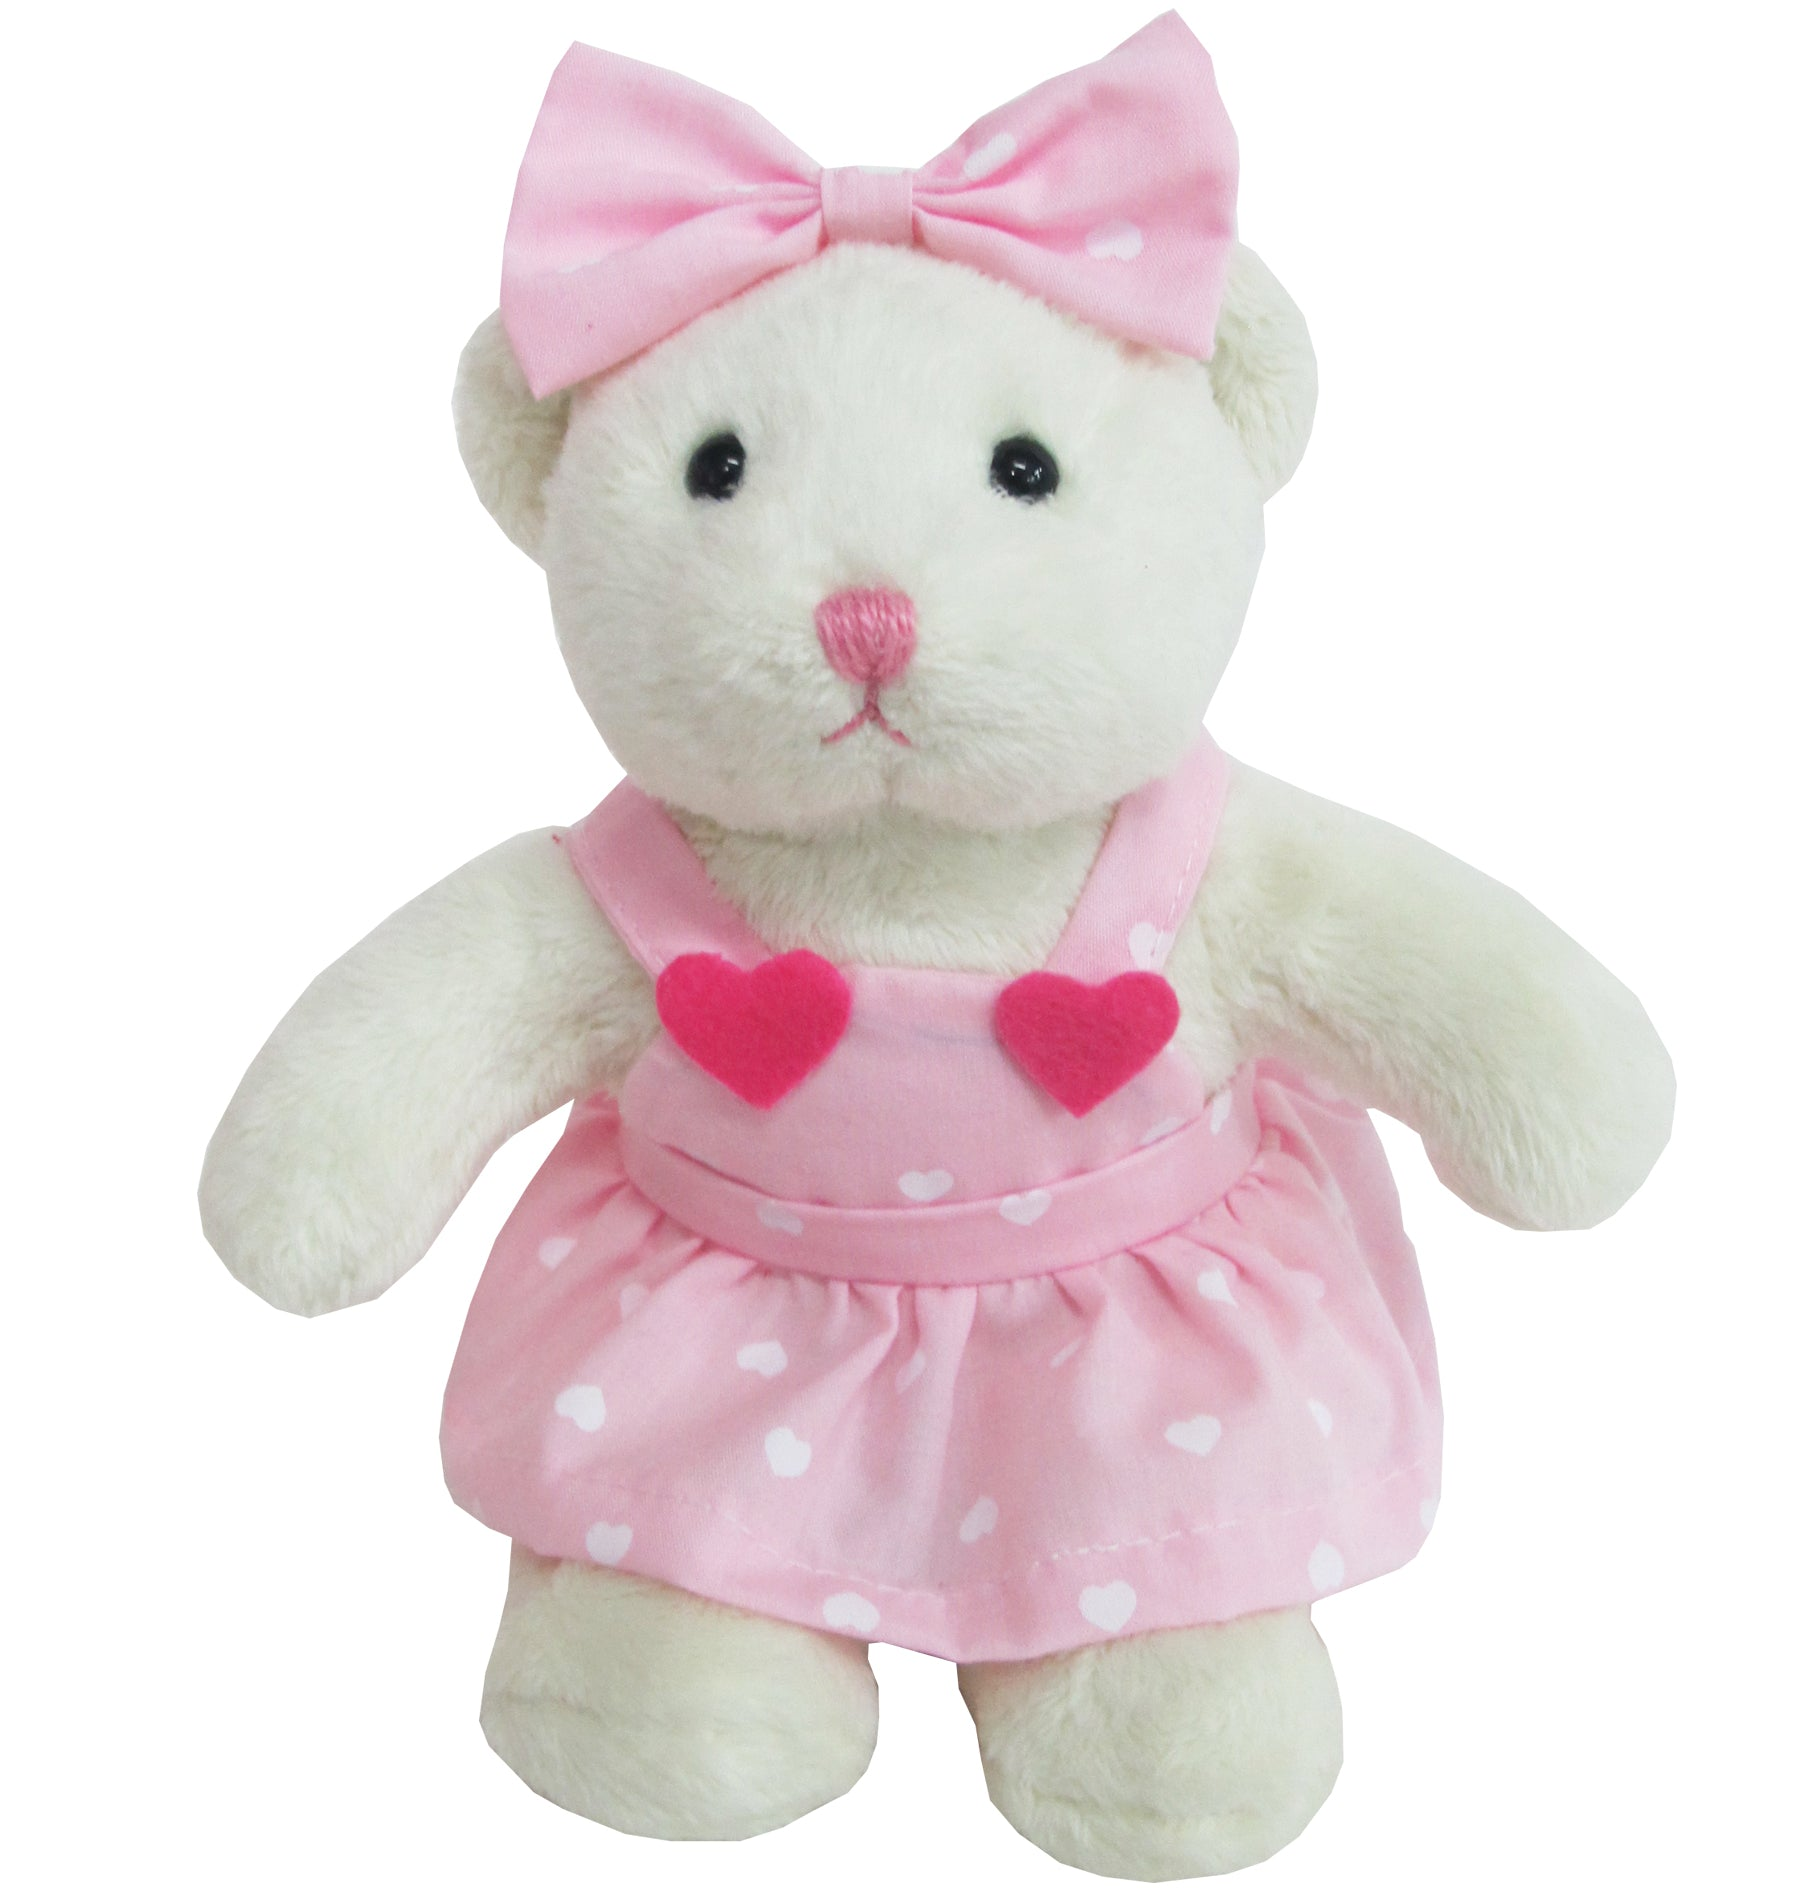 TEDDY HOUSE BONEKA TEDDY BEAR PP INTO LOVE 08 INCHI